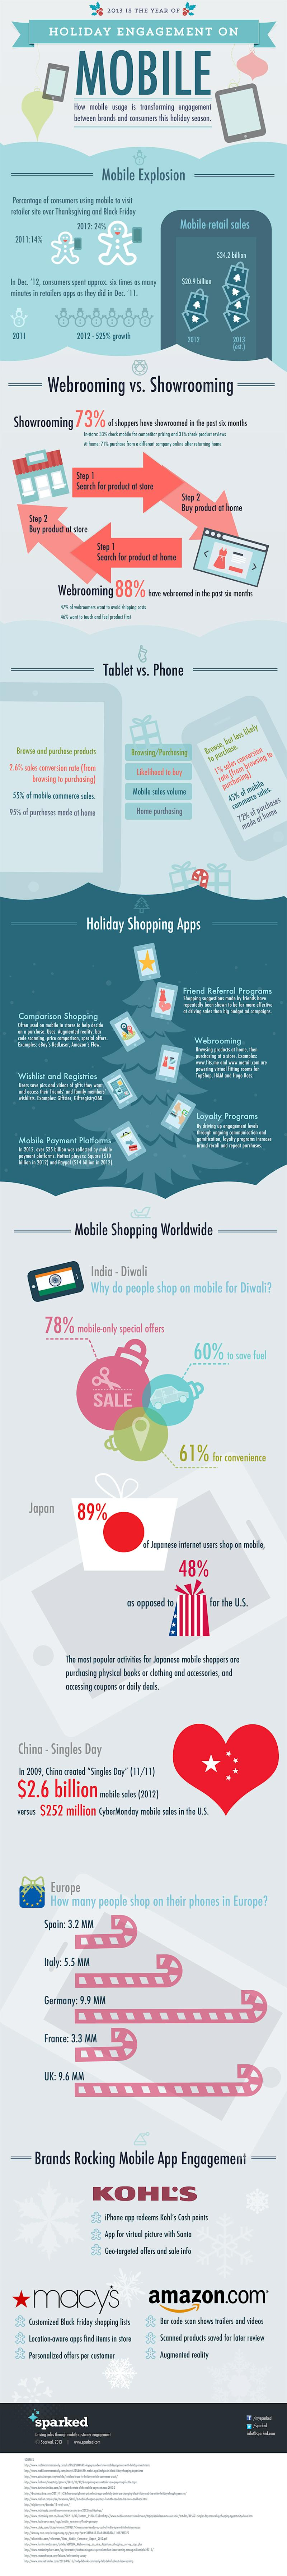 Mobile Commerce Has Completely Exploded (Infographic)